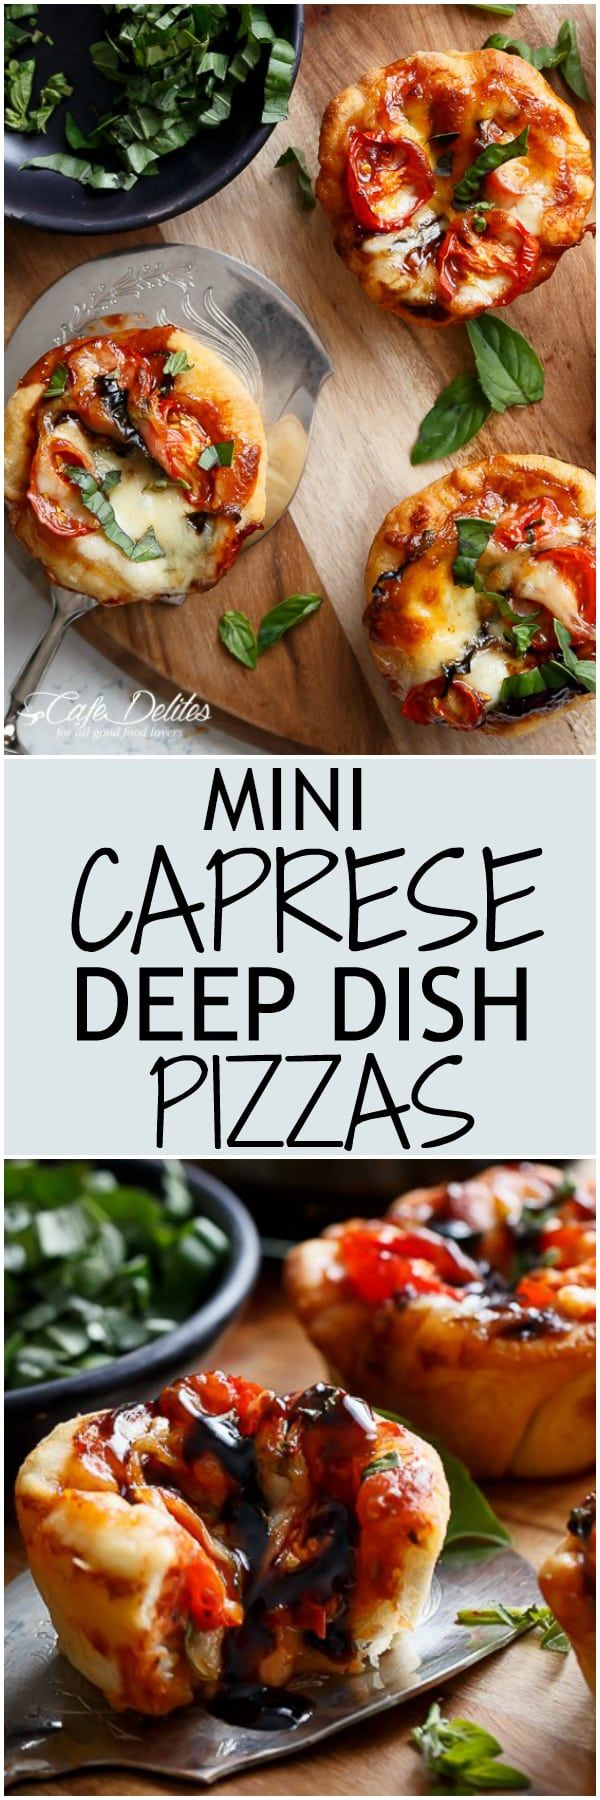 Caprese salad meets pizza in these delicious deep dish